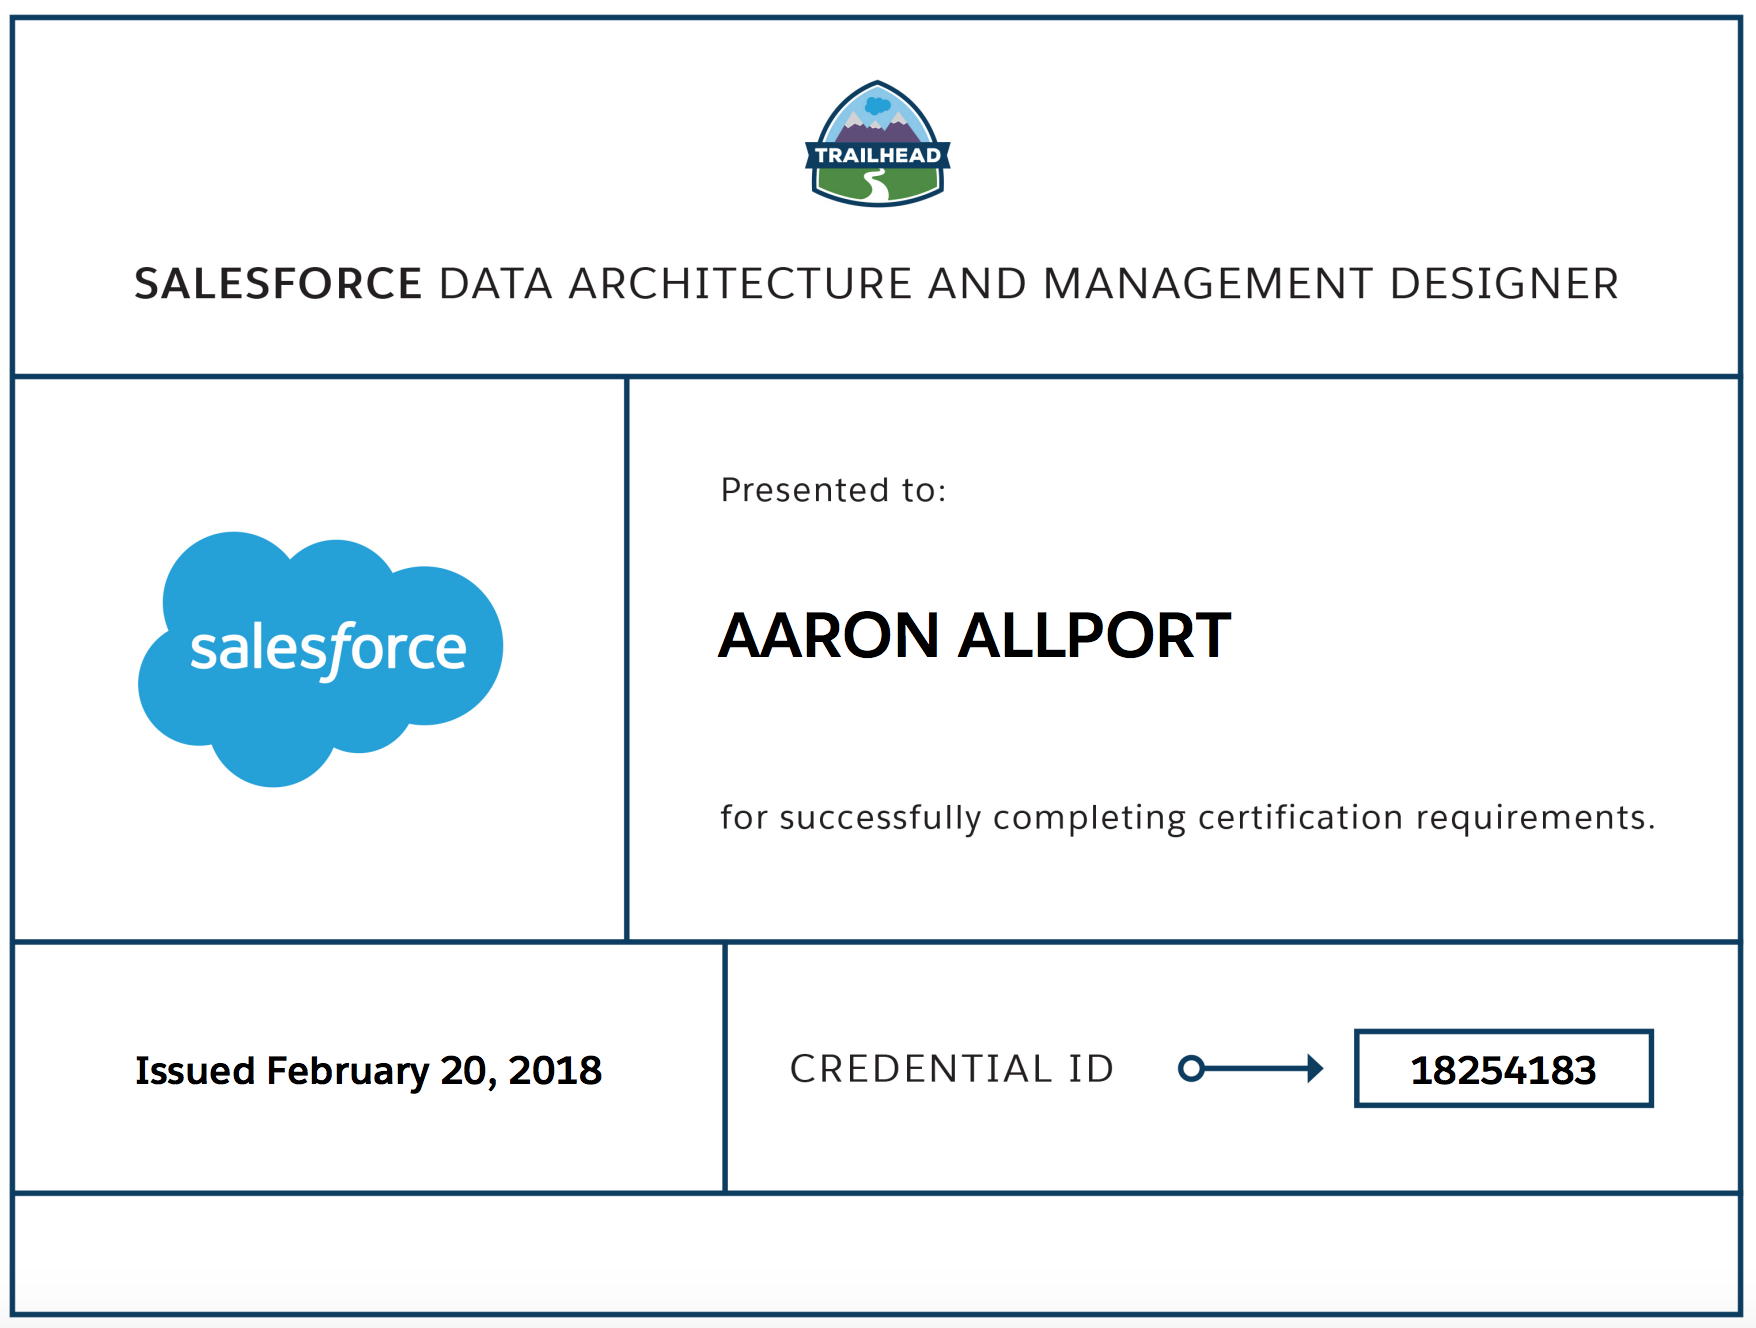 I'm a Certified Salesforce Data Management and Architecture Designer